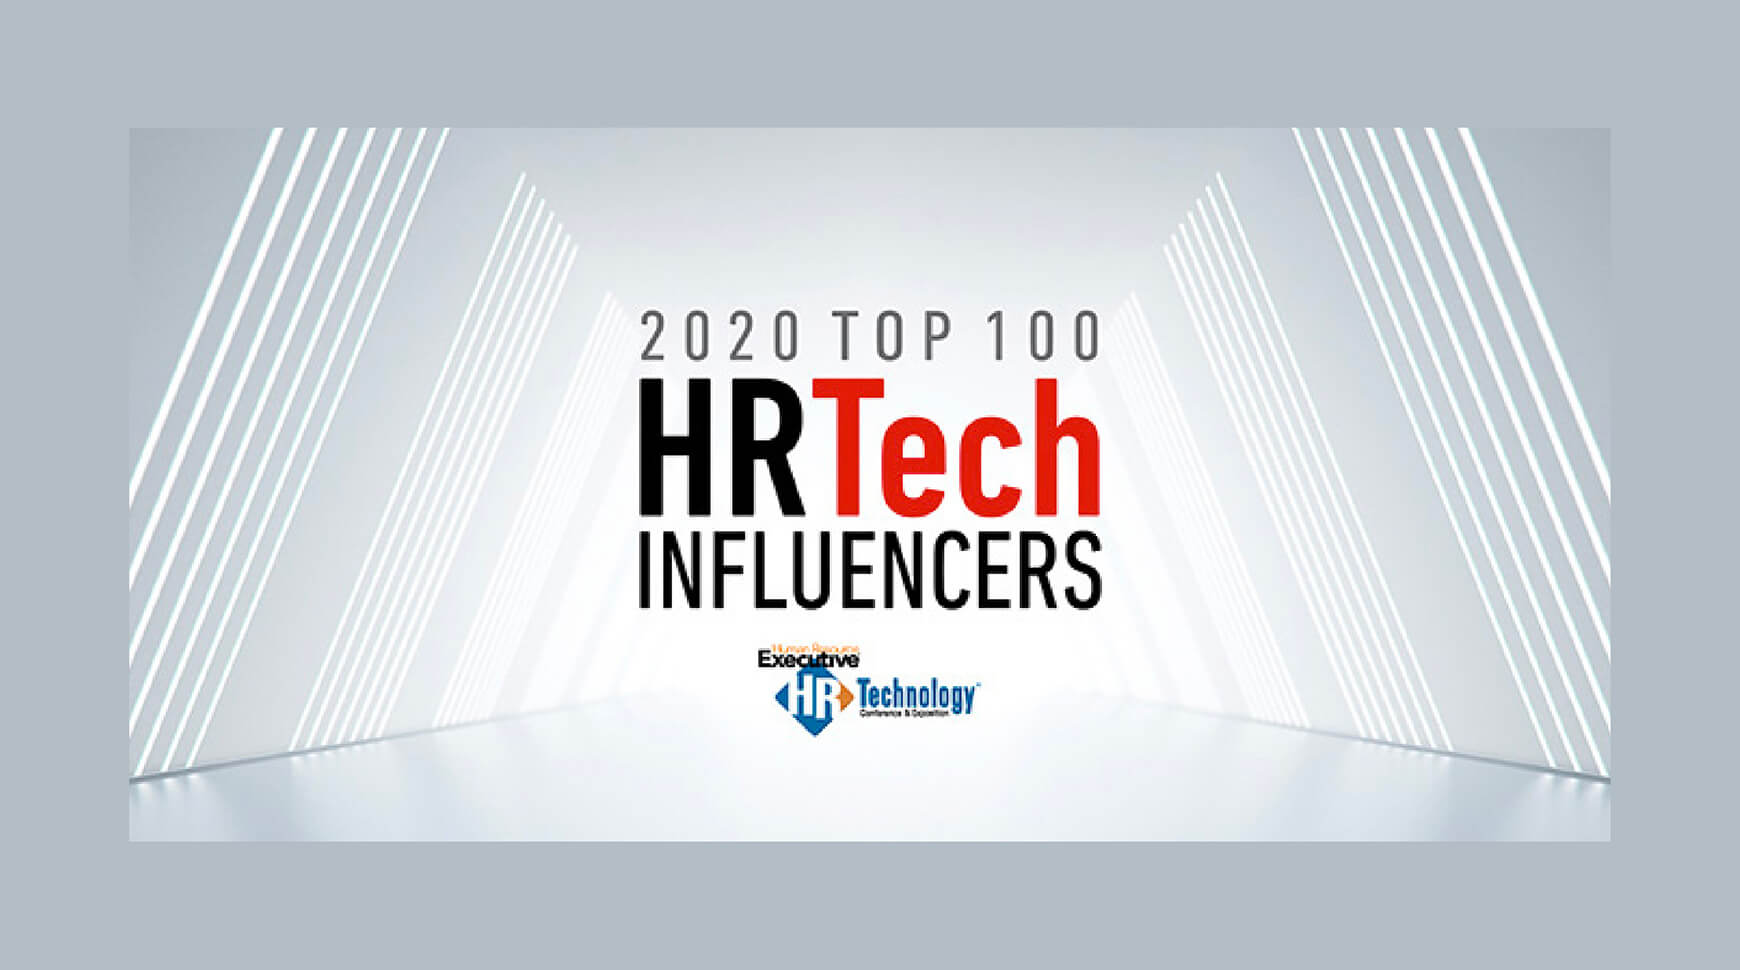 2020 Top 100 HR Tech Influencers from Human Resource Executive® and the HR Technology Conference & Exposition®